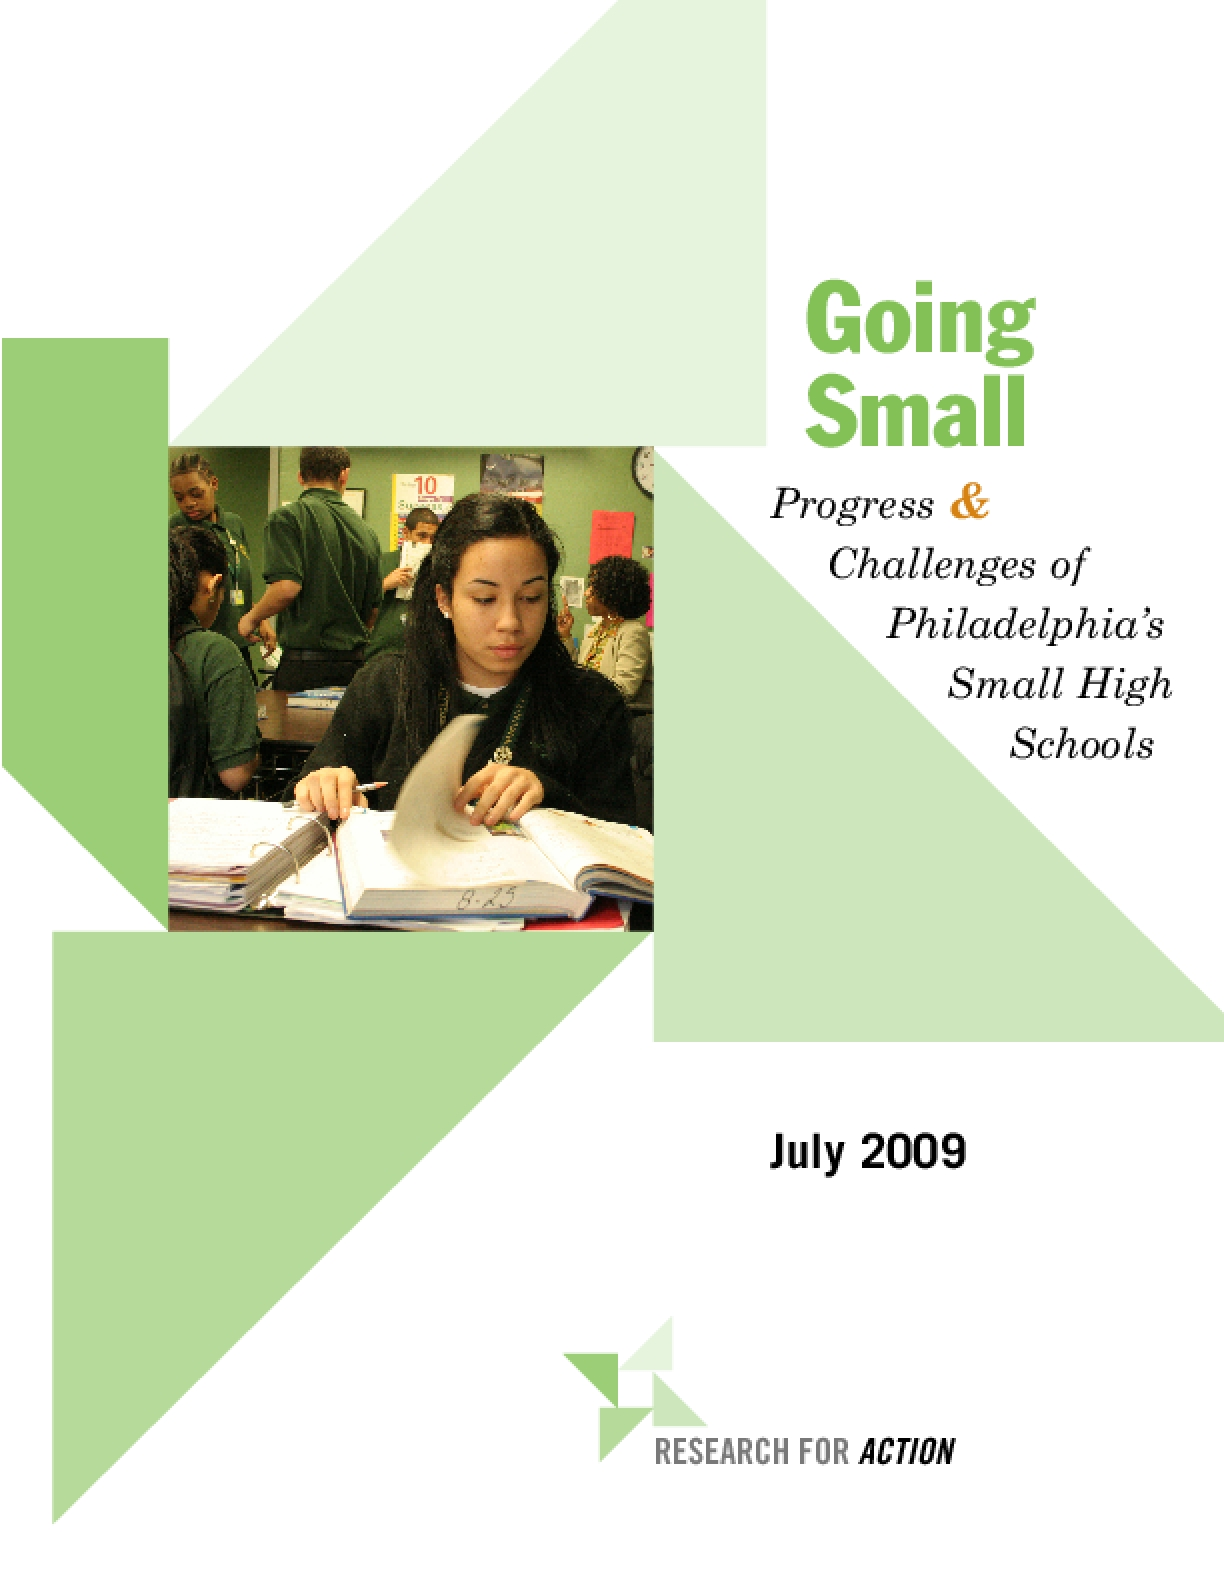 Going Small: Progress and Challenges of Philadelphia's Small High Schools